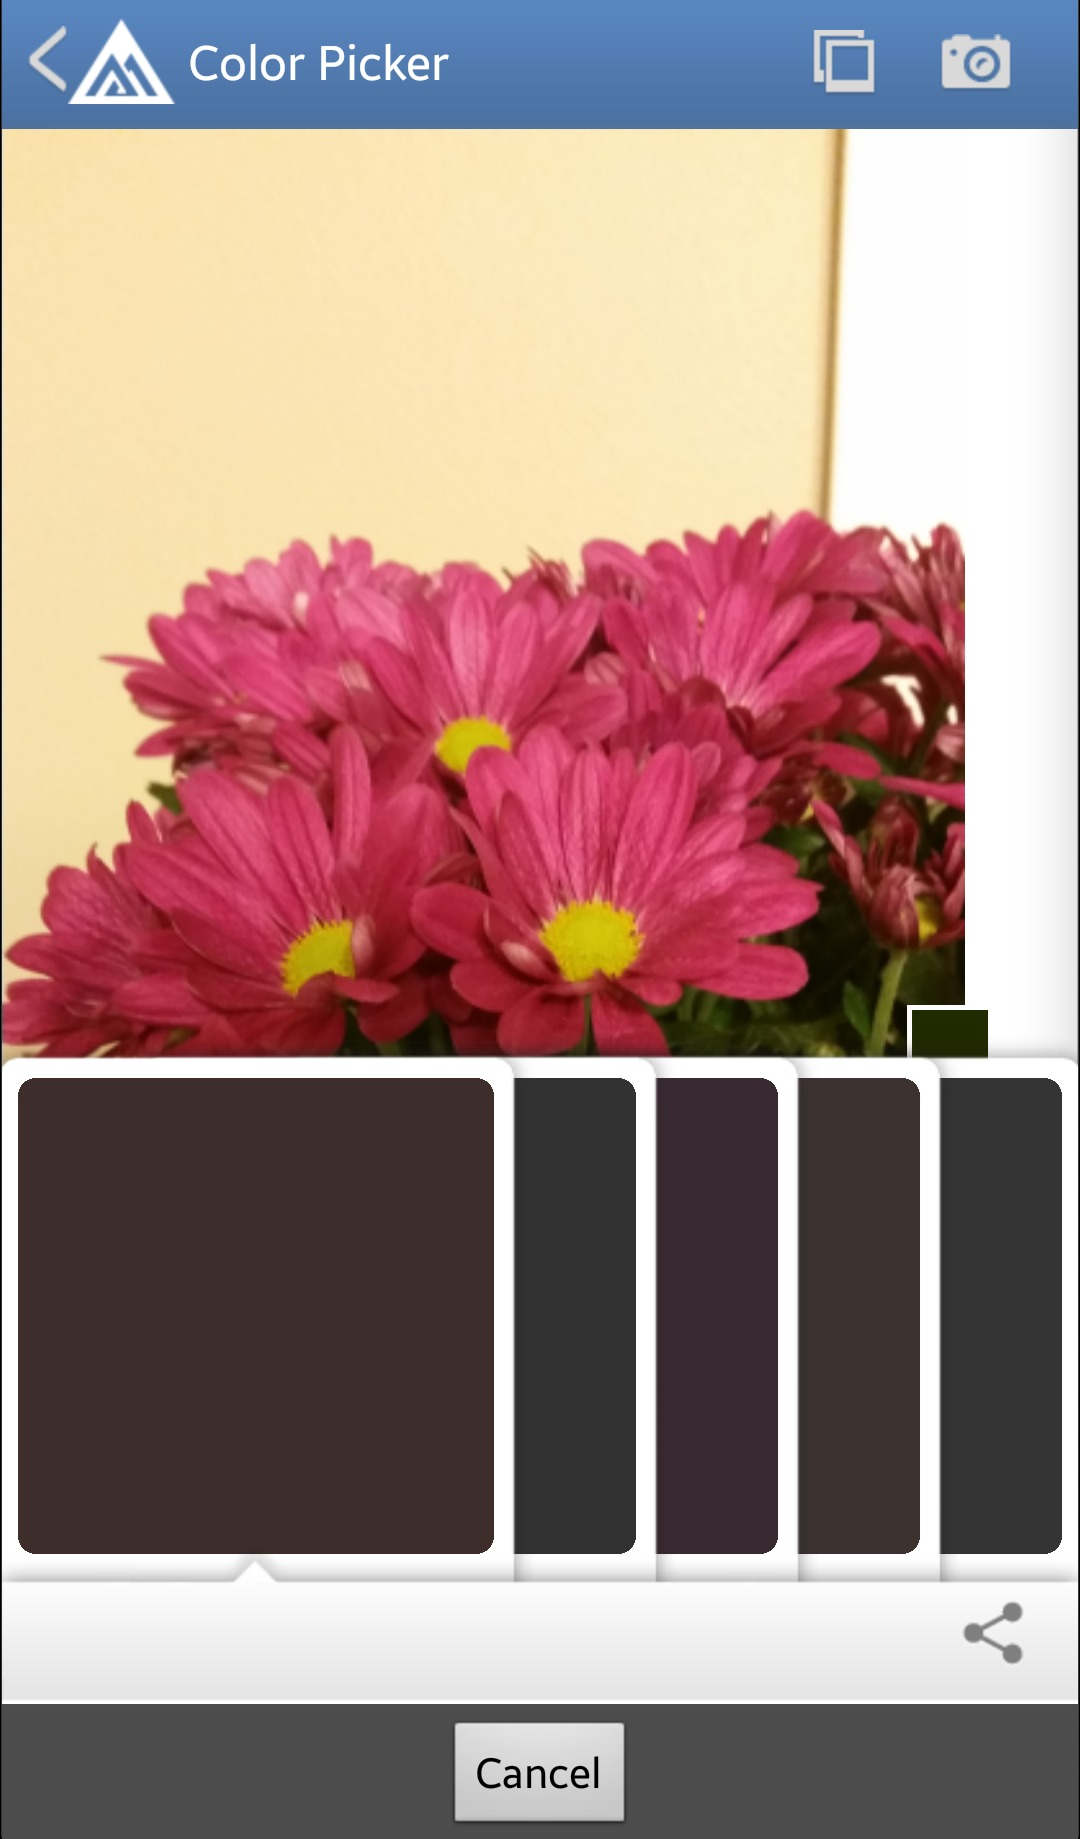 Color picker online upload image - Benjamin Moore Color Picker Free Android Diy App To Select A Paint Color From A